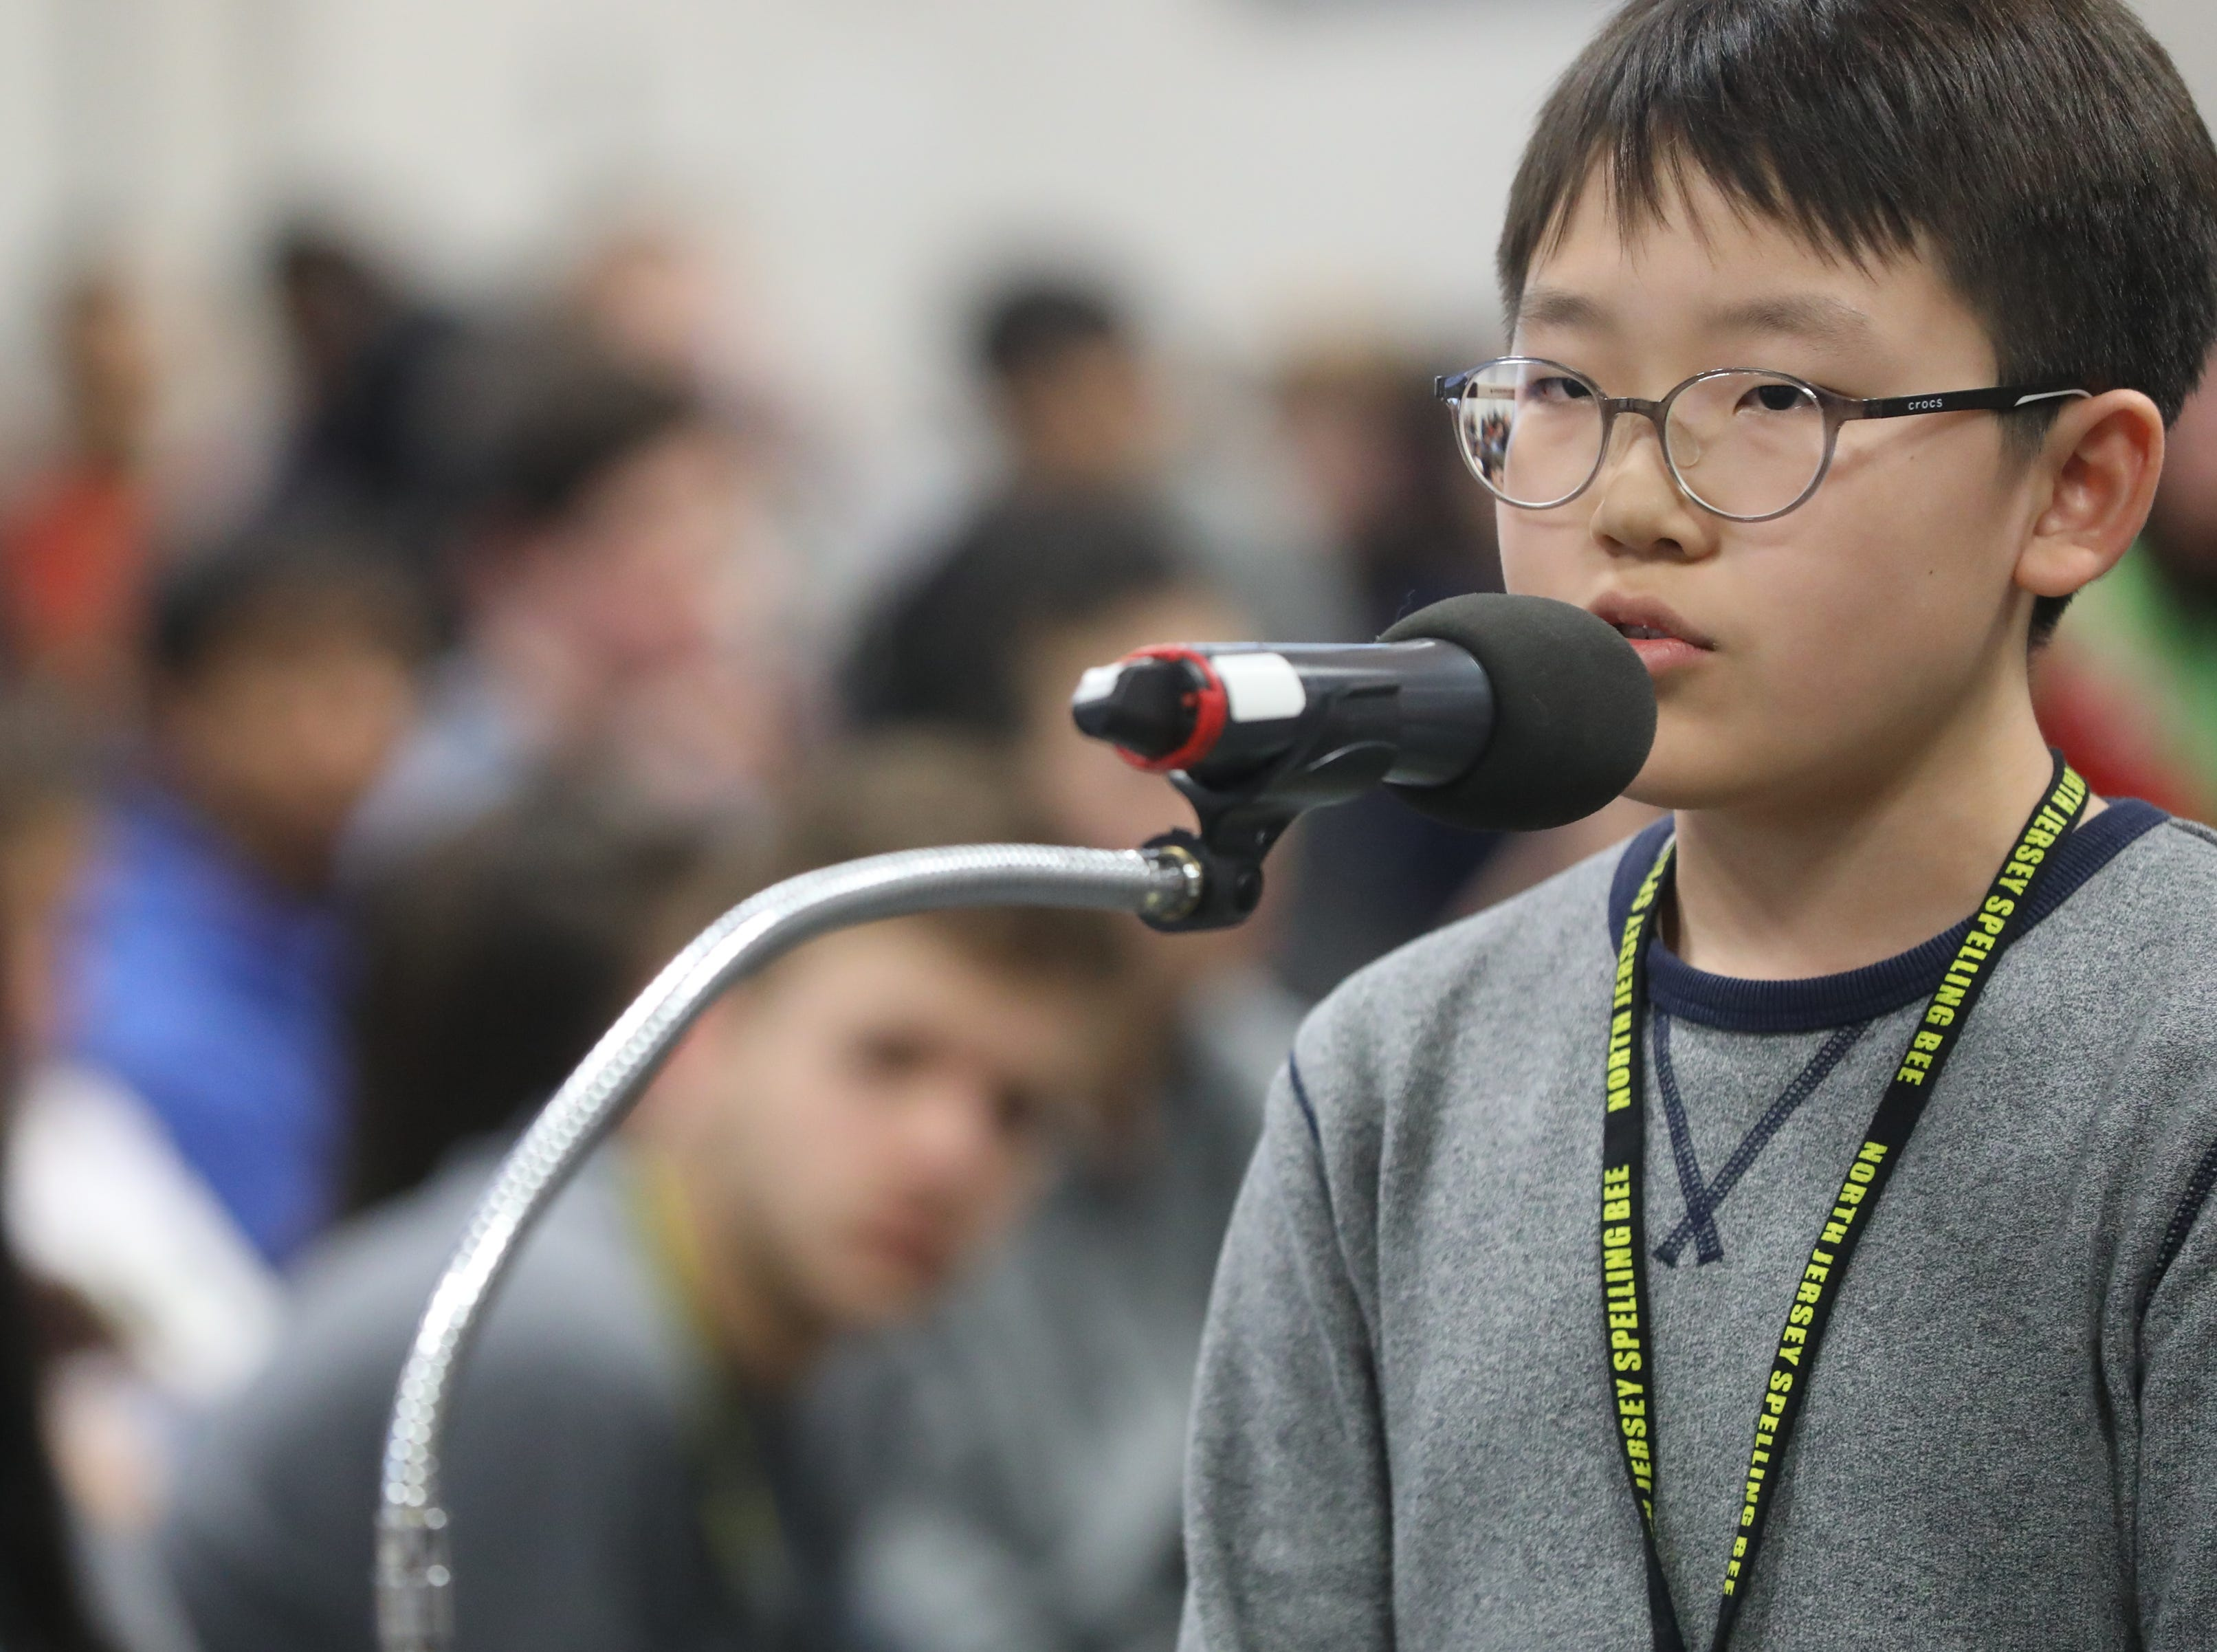 Jeremy Min, of Fort Lee, competes in the first round of the 2019 North Jersey Spelling Bee, in Paramus. Thursday, March 14, 2019